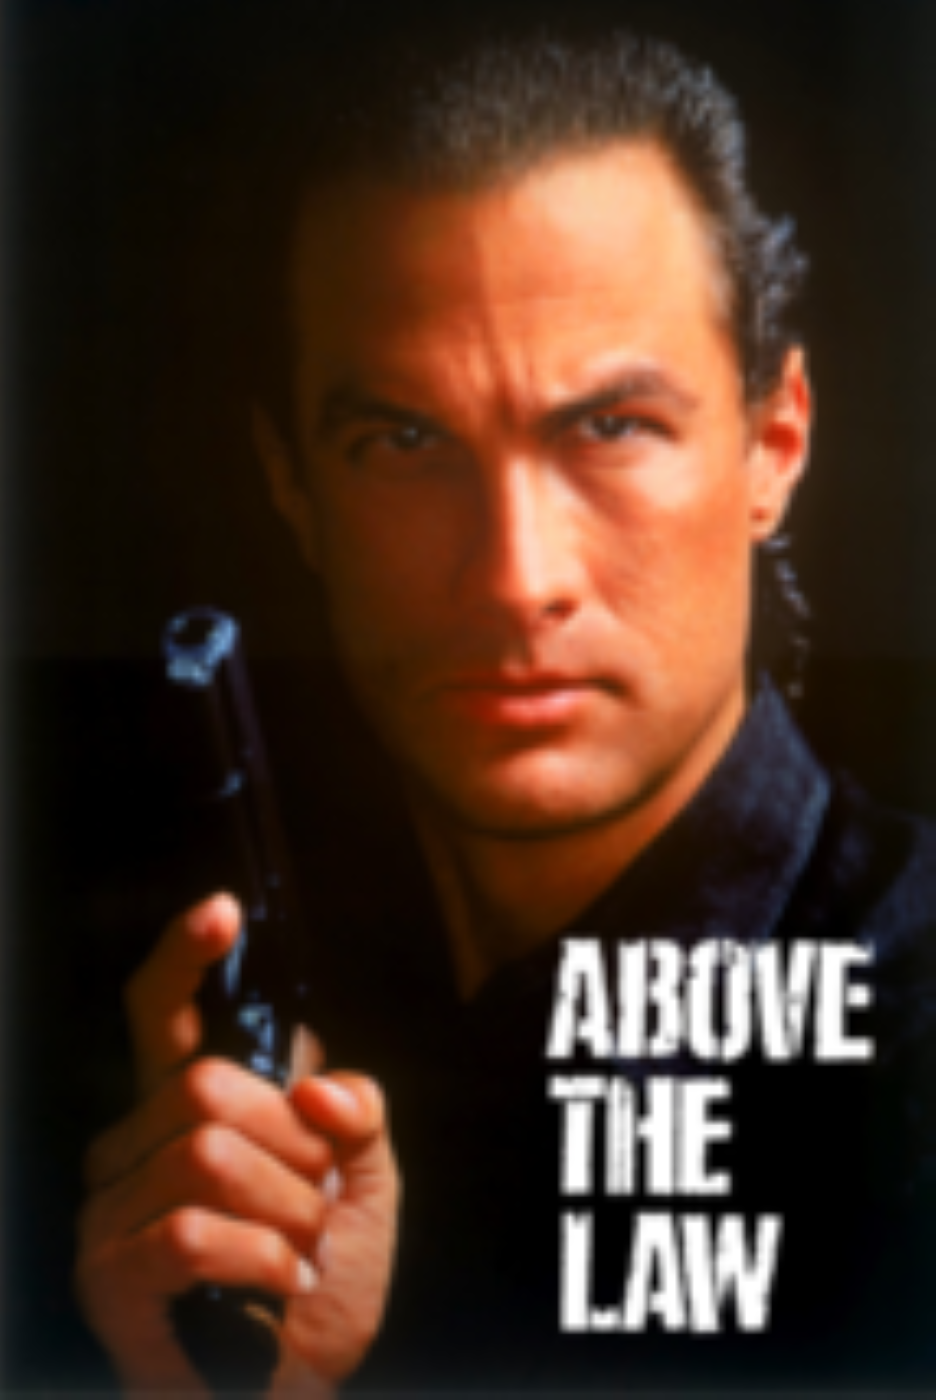 Above the Law Vhs